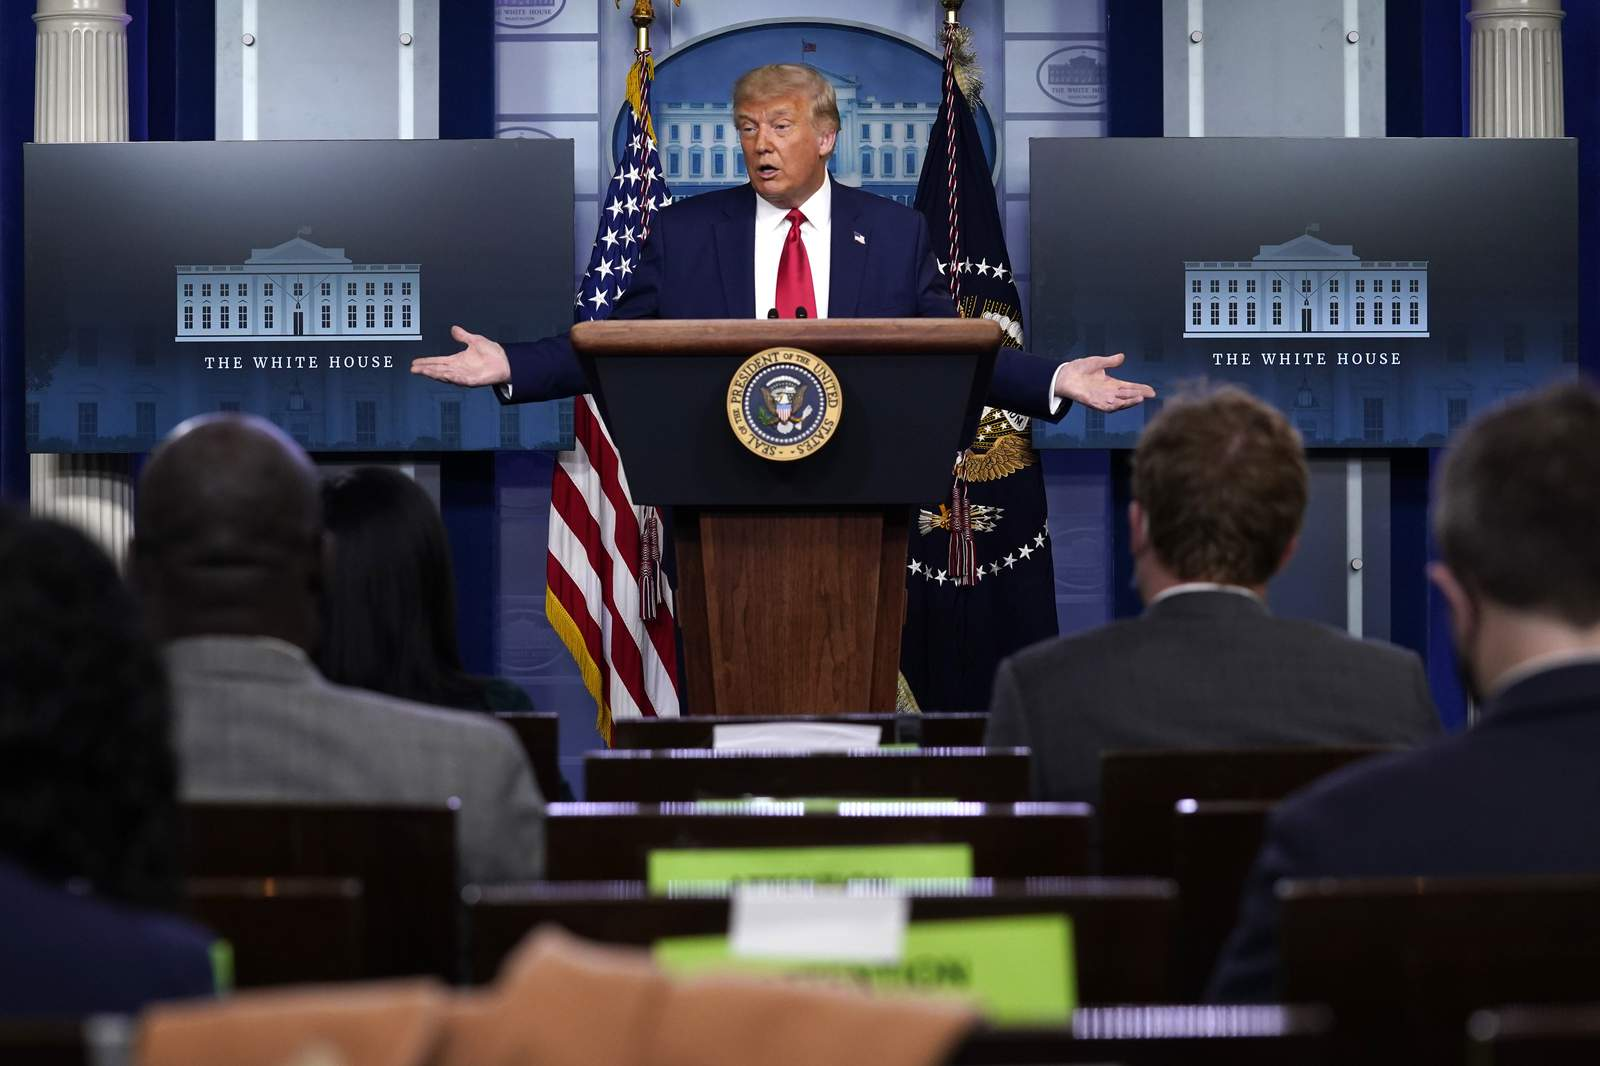 Trump says he knows better than experts